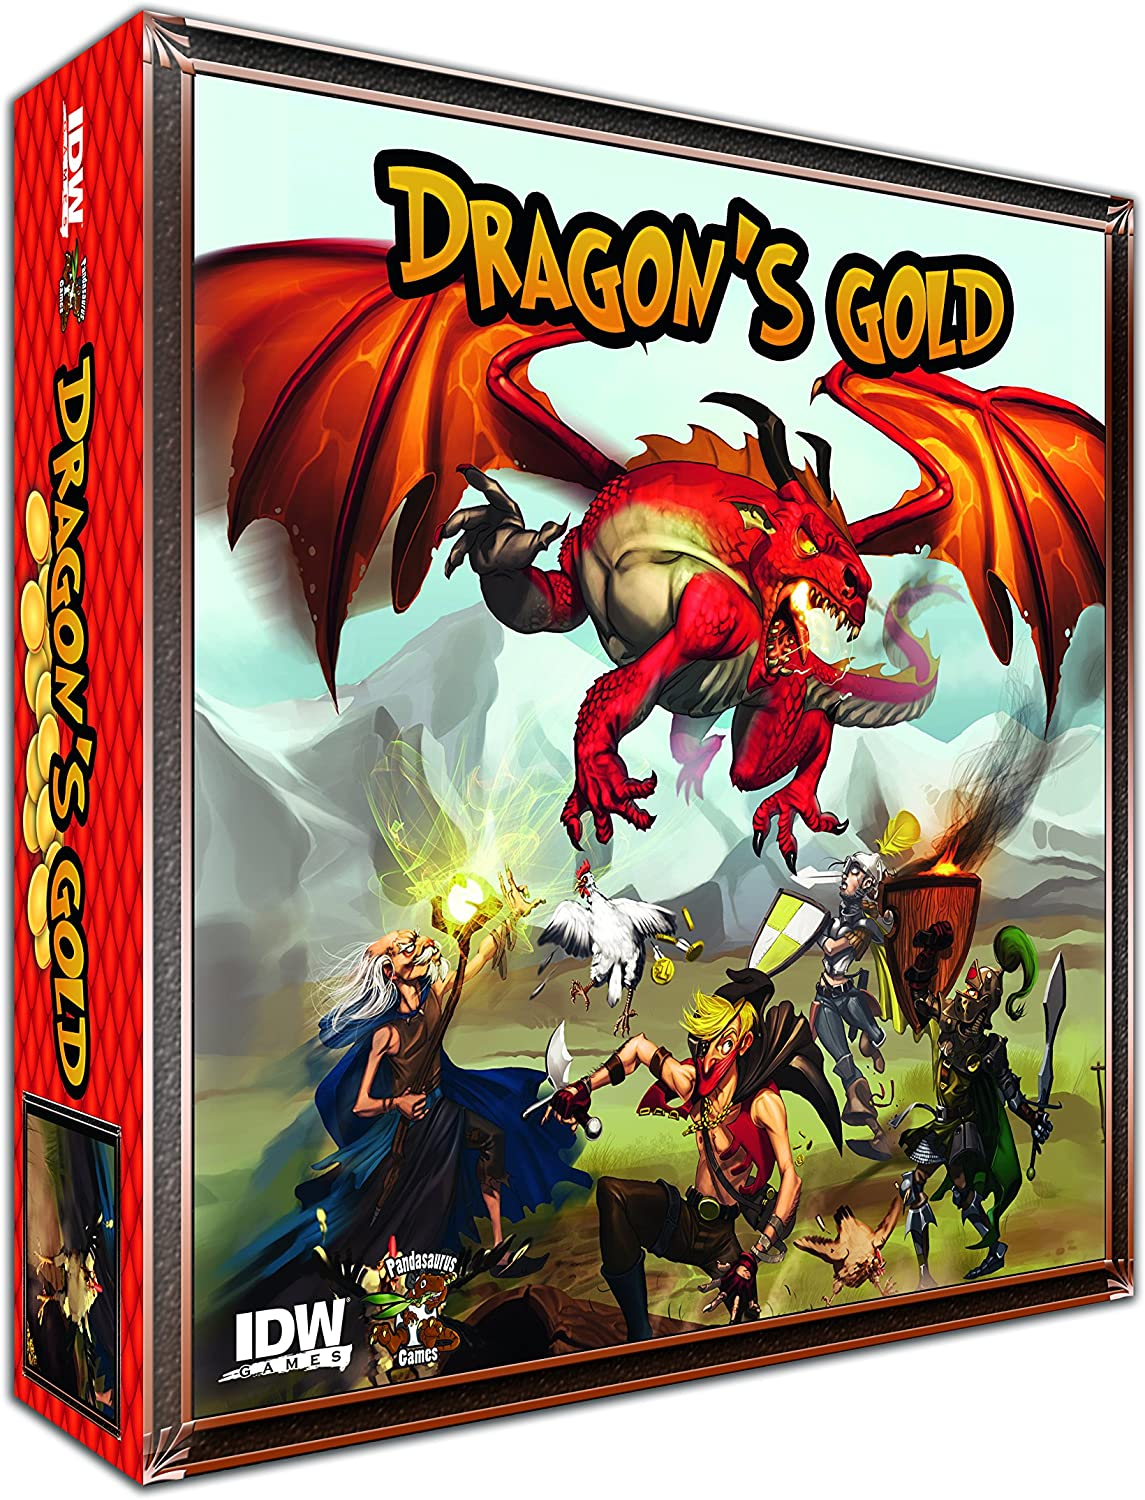 Winning dragons gold dragon nest sea how to earn gold fast